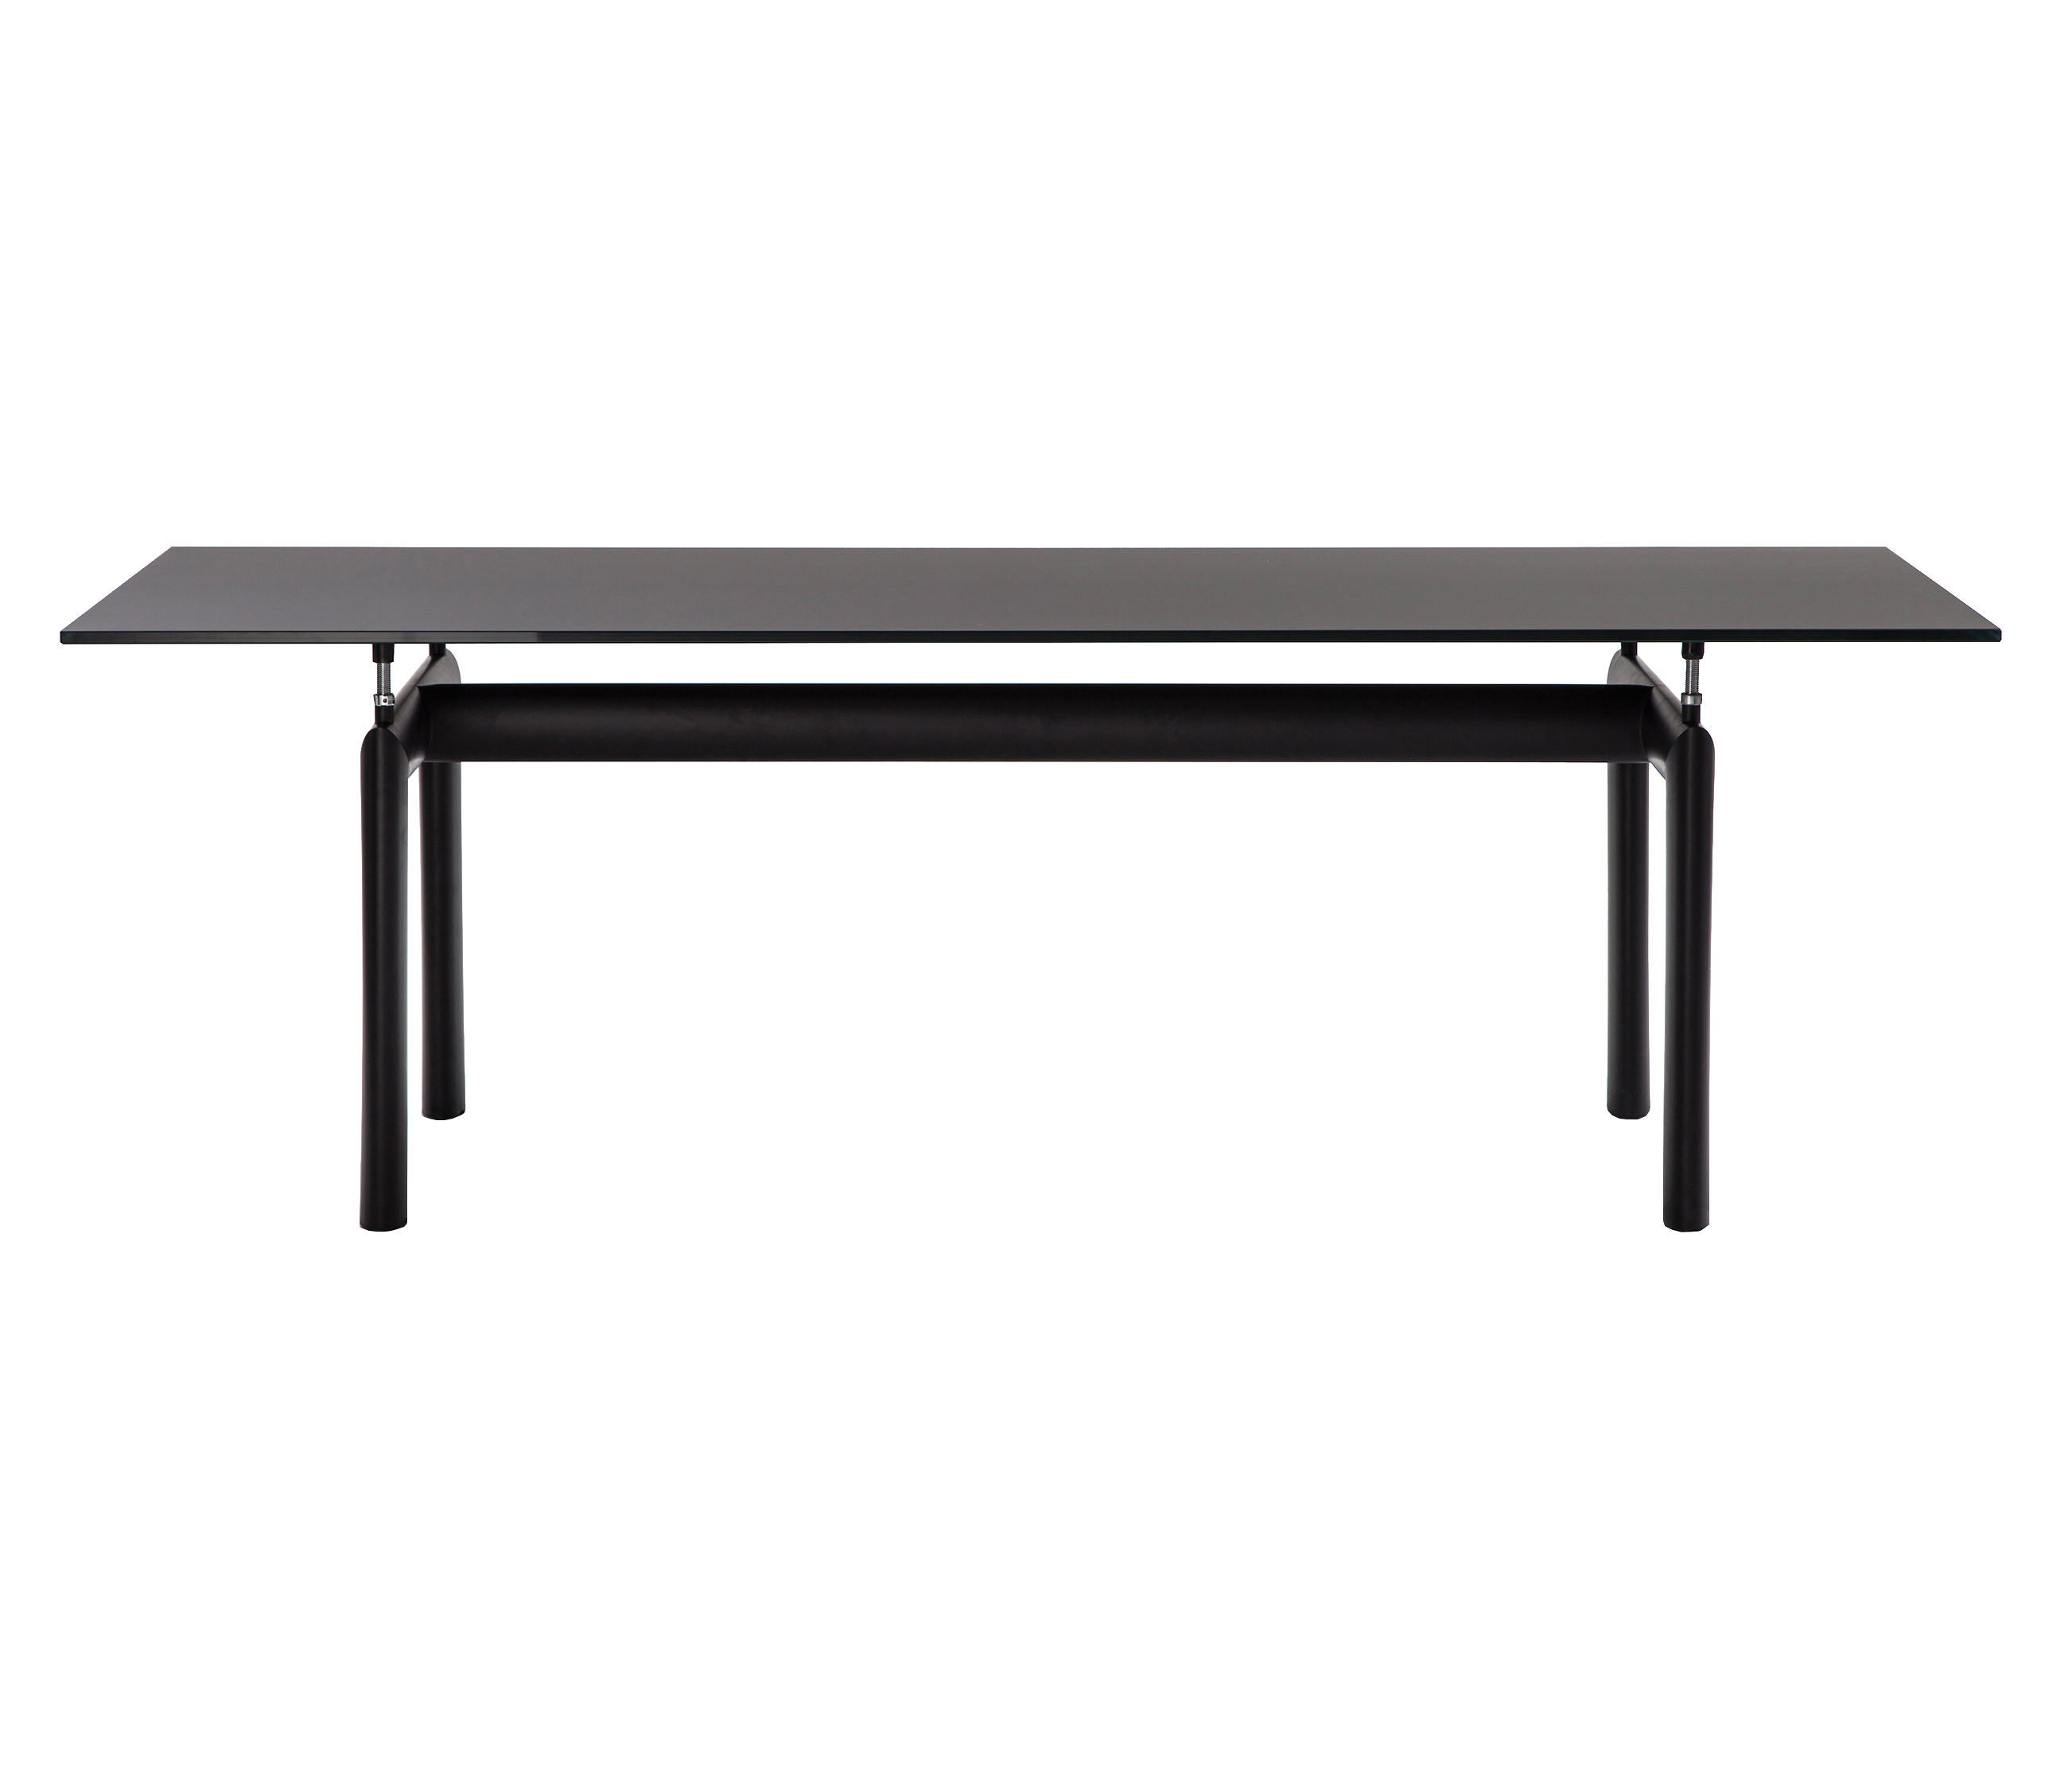 Lc6 table dining tables from cassina architonic for Cassina spa meda